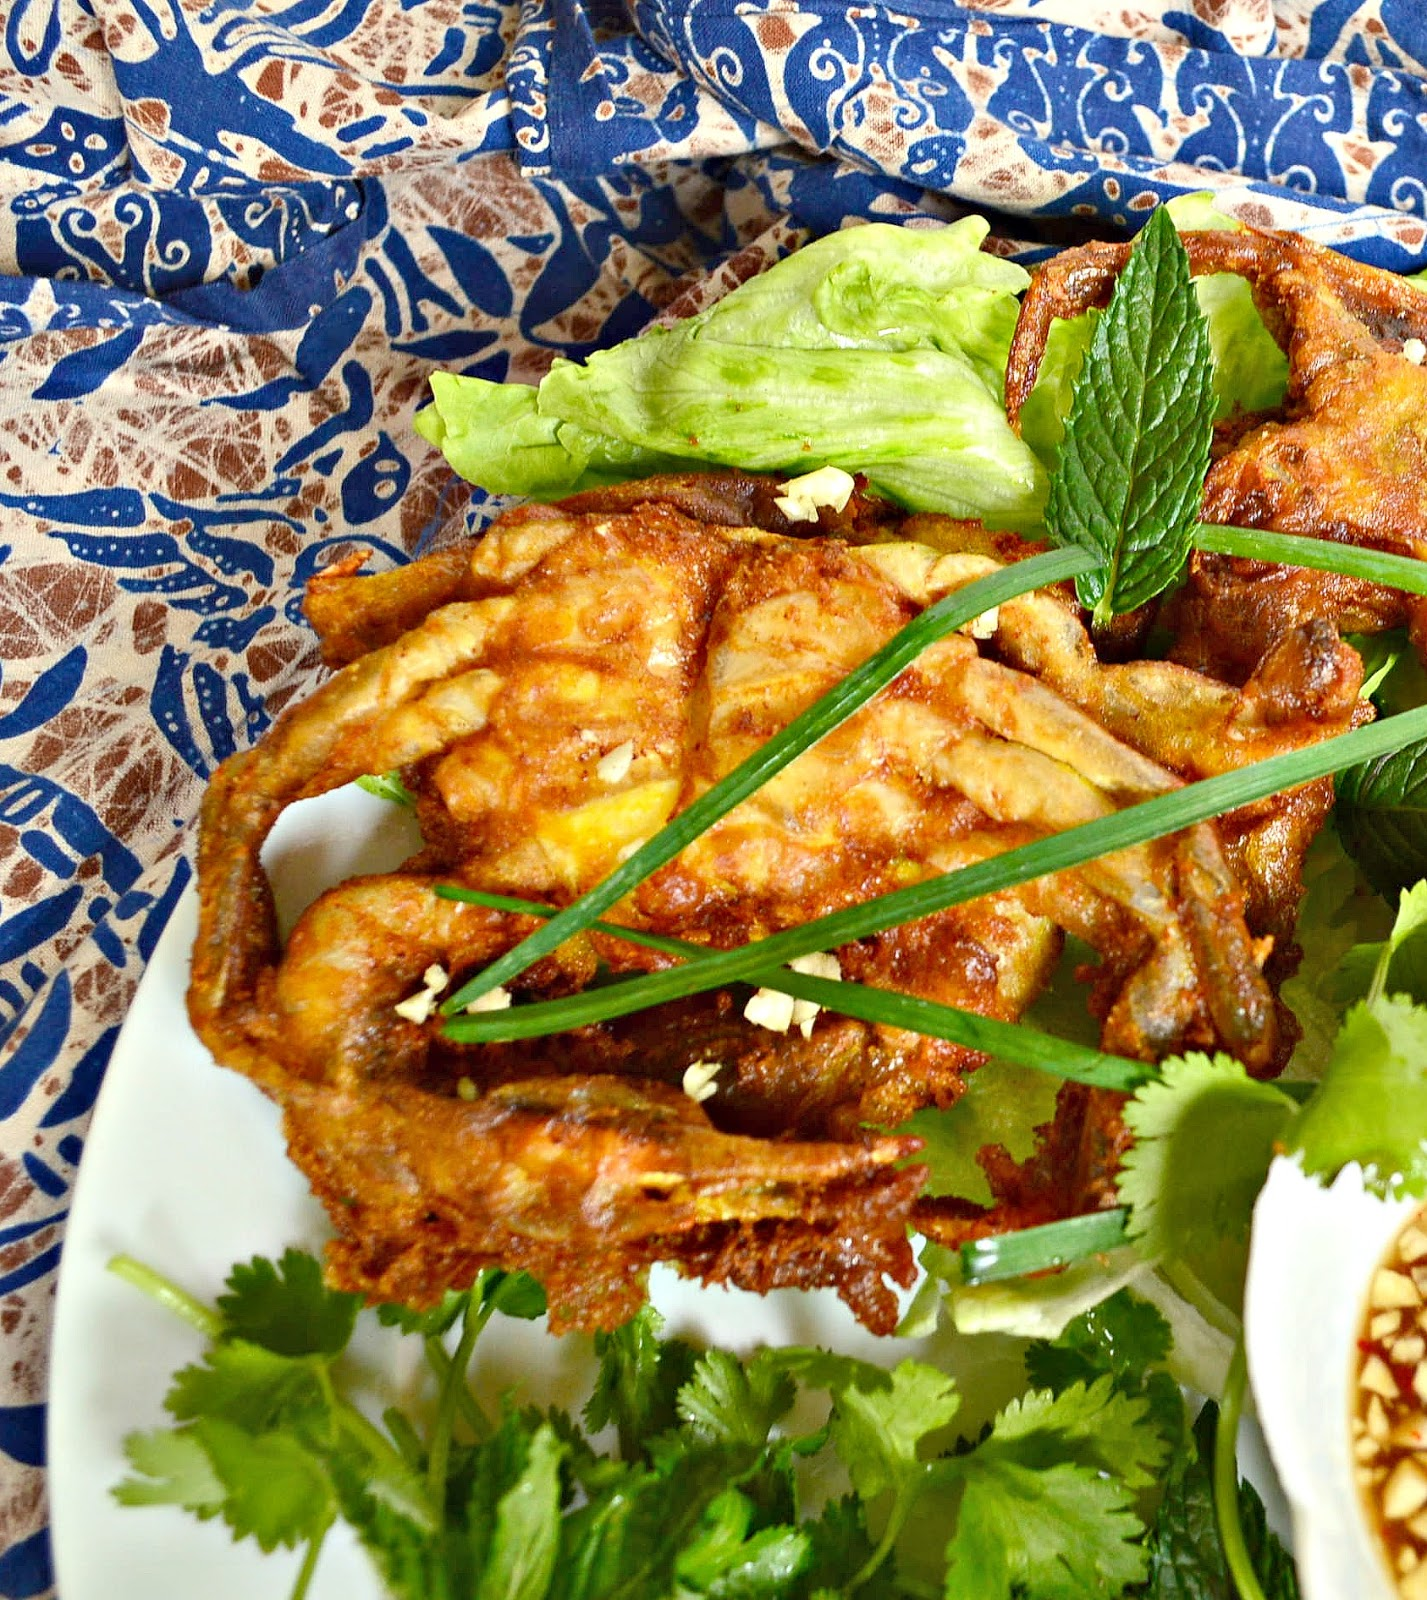 This beer batter makes a perfectly crunchy and light crust on these Vietnamese soft shell crabs. I love this recipe and use it every time I can get my hands on these! #softshellcrabs #seafood #Vietnameserecipes www.thisishowicook.com